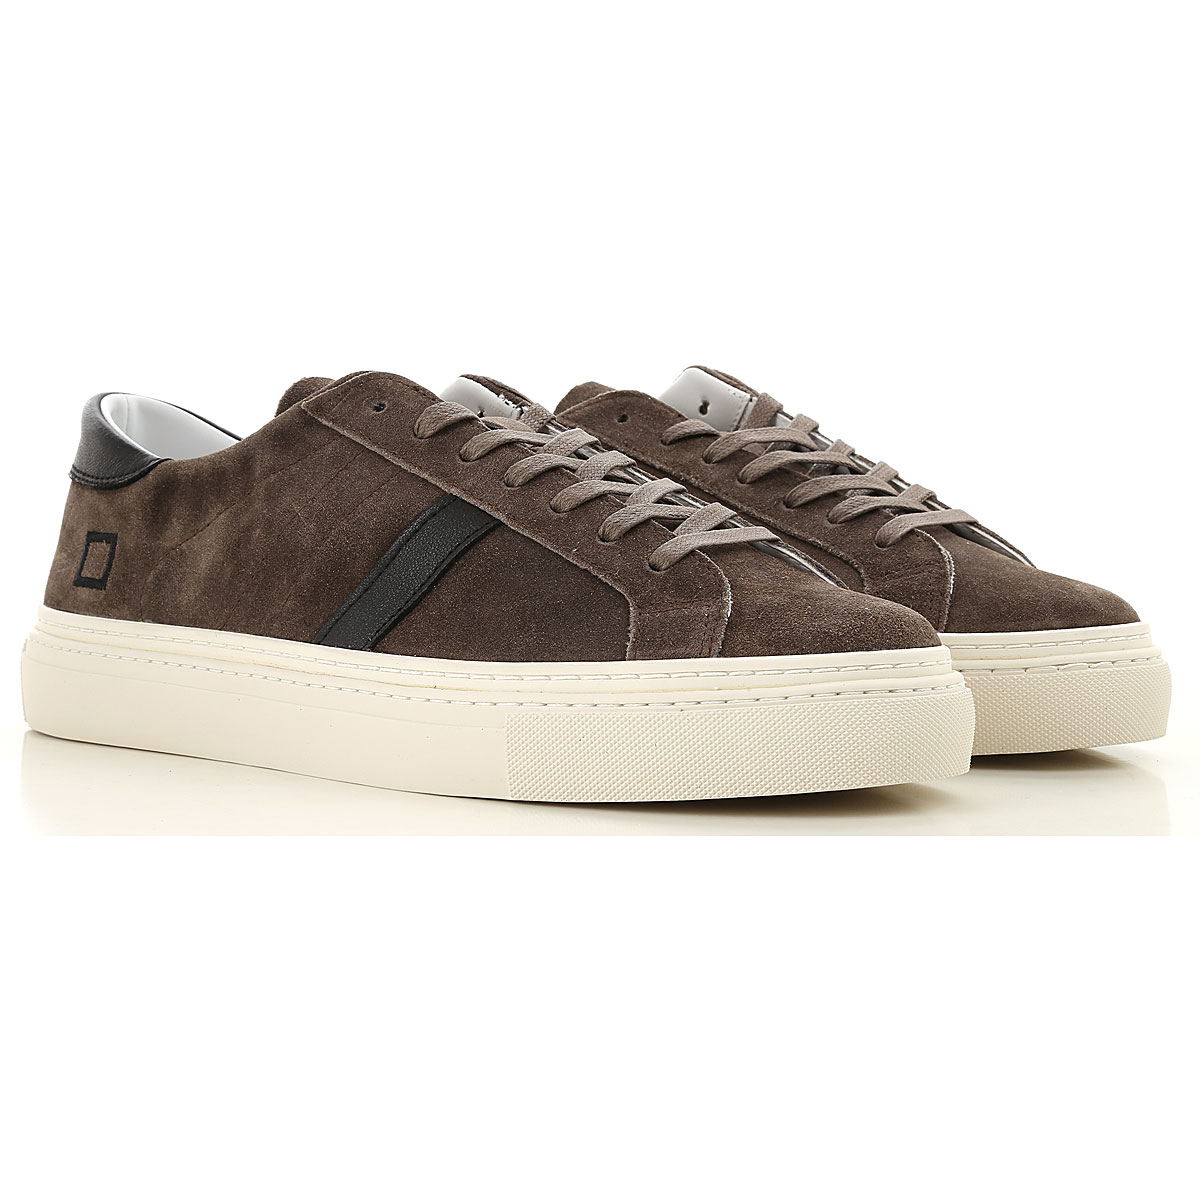 Image of D.A.T.E. Sneakers for Men, Mud, suede, 2017, US 7 - EU 40 - UK 6 - JP 26 US 8 - EU 41 - UK 7 - JP 26.5 US 9 - EU 42 - UK 8 - JP 27 US 10 - EU 43 - UK 9 - JP 27.5 US 11 - EU 44 - UK 10 - JP 28